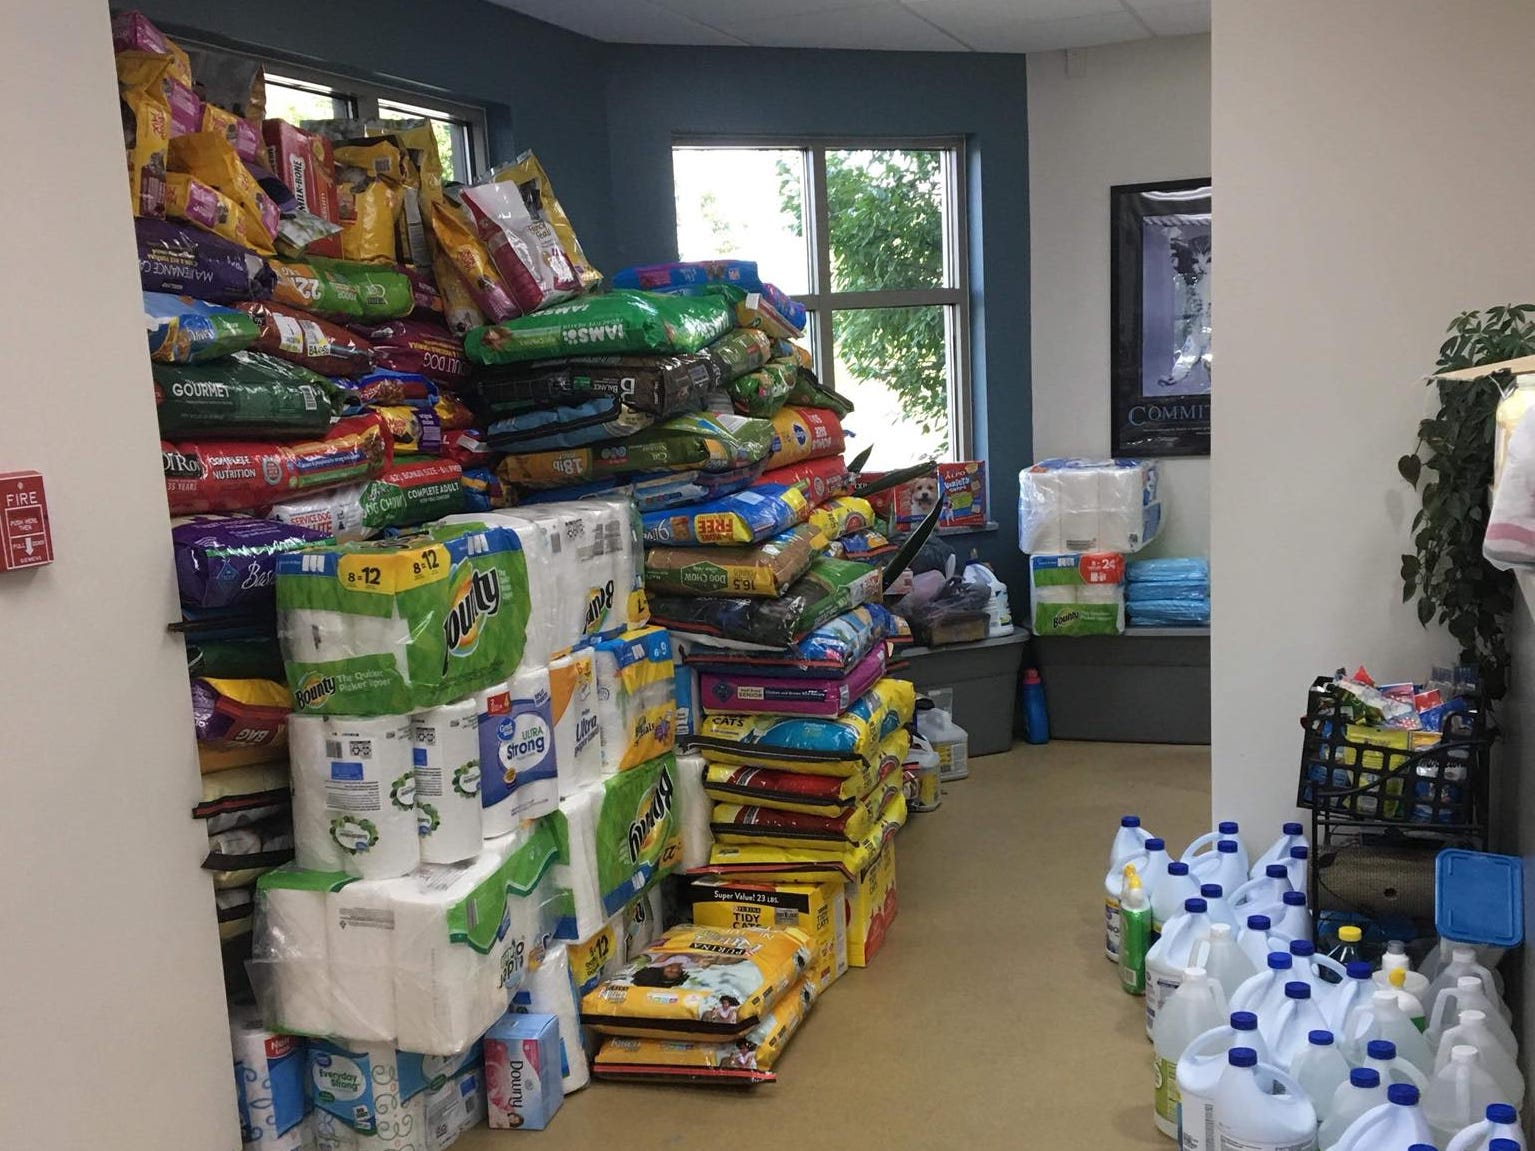 Donations are stacked neatly after people responded in droves to the The lobby of the Hendricks County Animal Shelter's pleas for help.